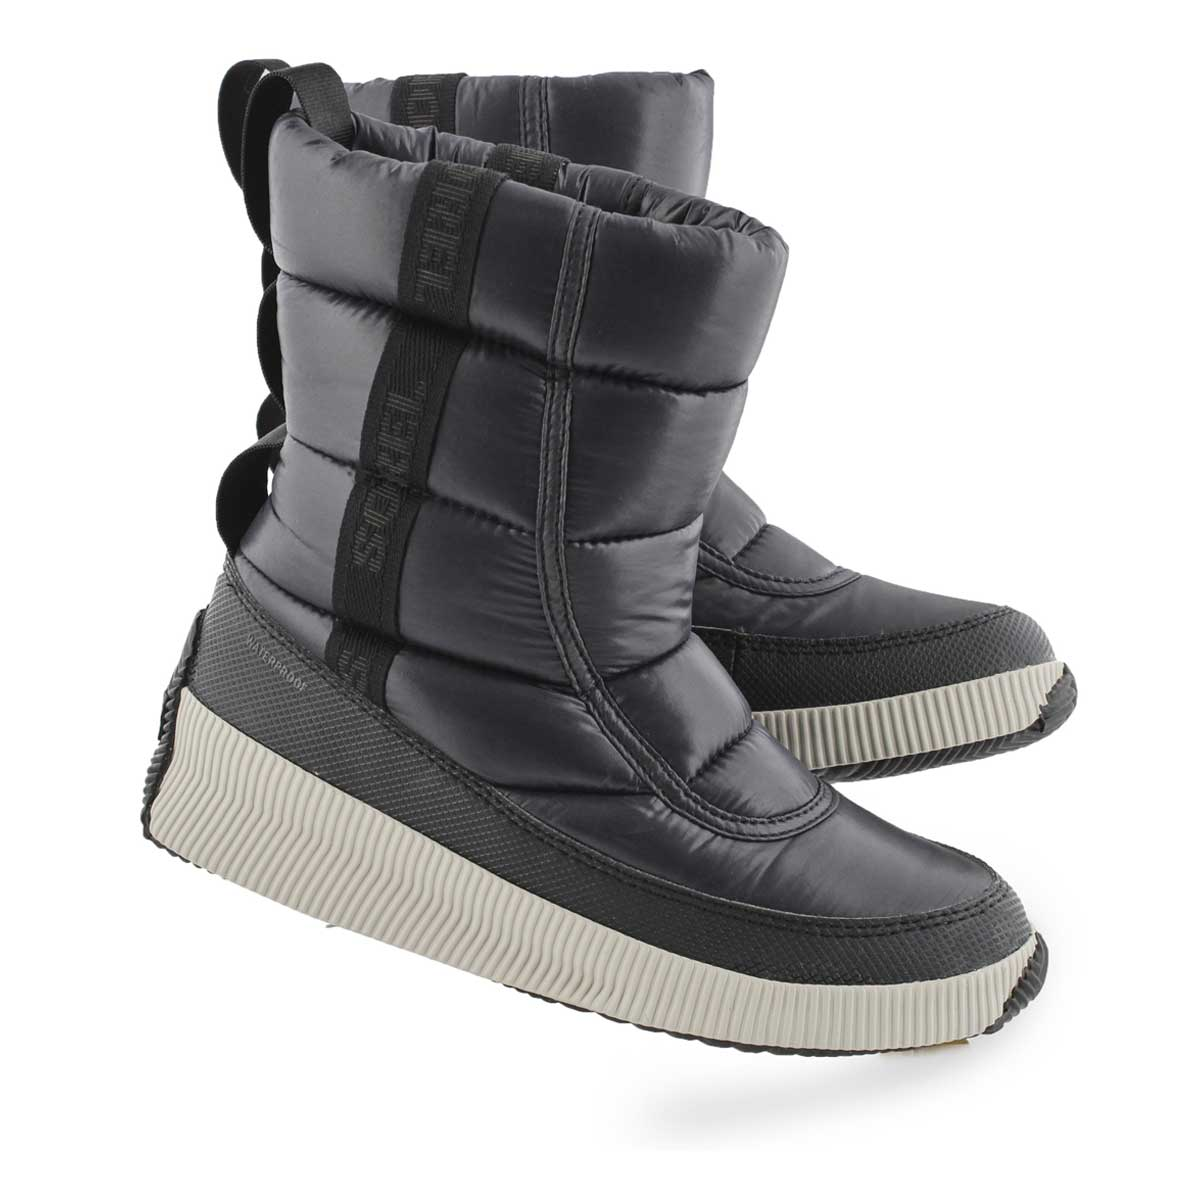 Lds Out 'N About Puffy Mid blk wtpf boot